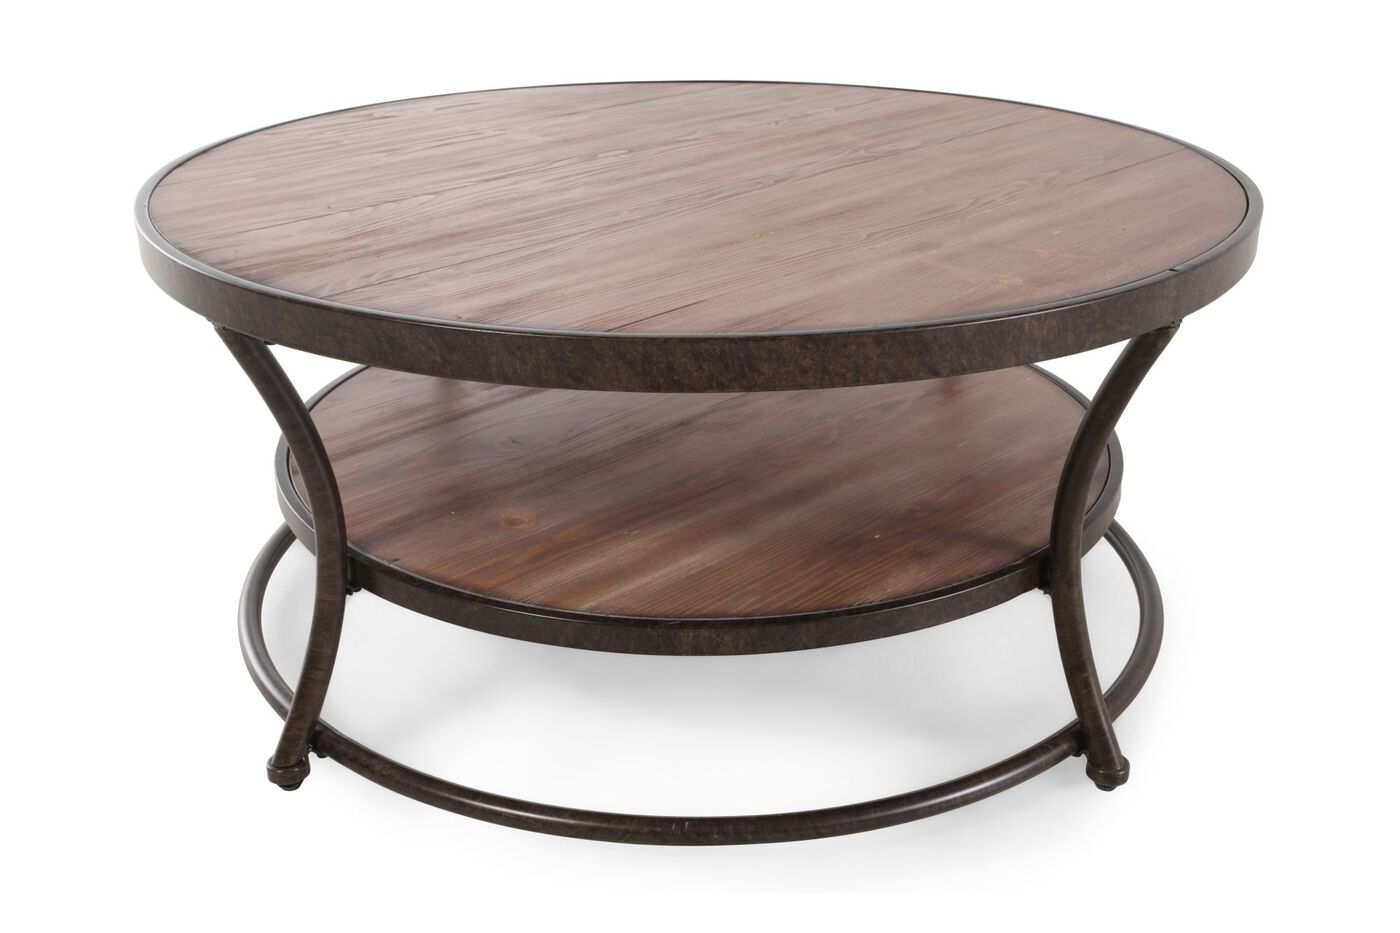 Coffee tables cocktail tables mathis brothers stacked casual cocktail tablenbsp geotapseo Gallery